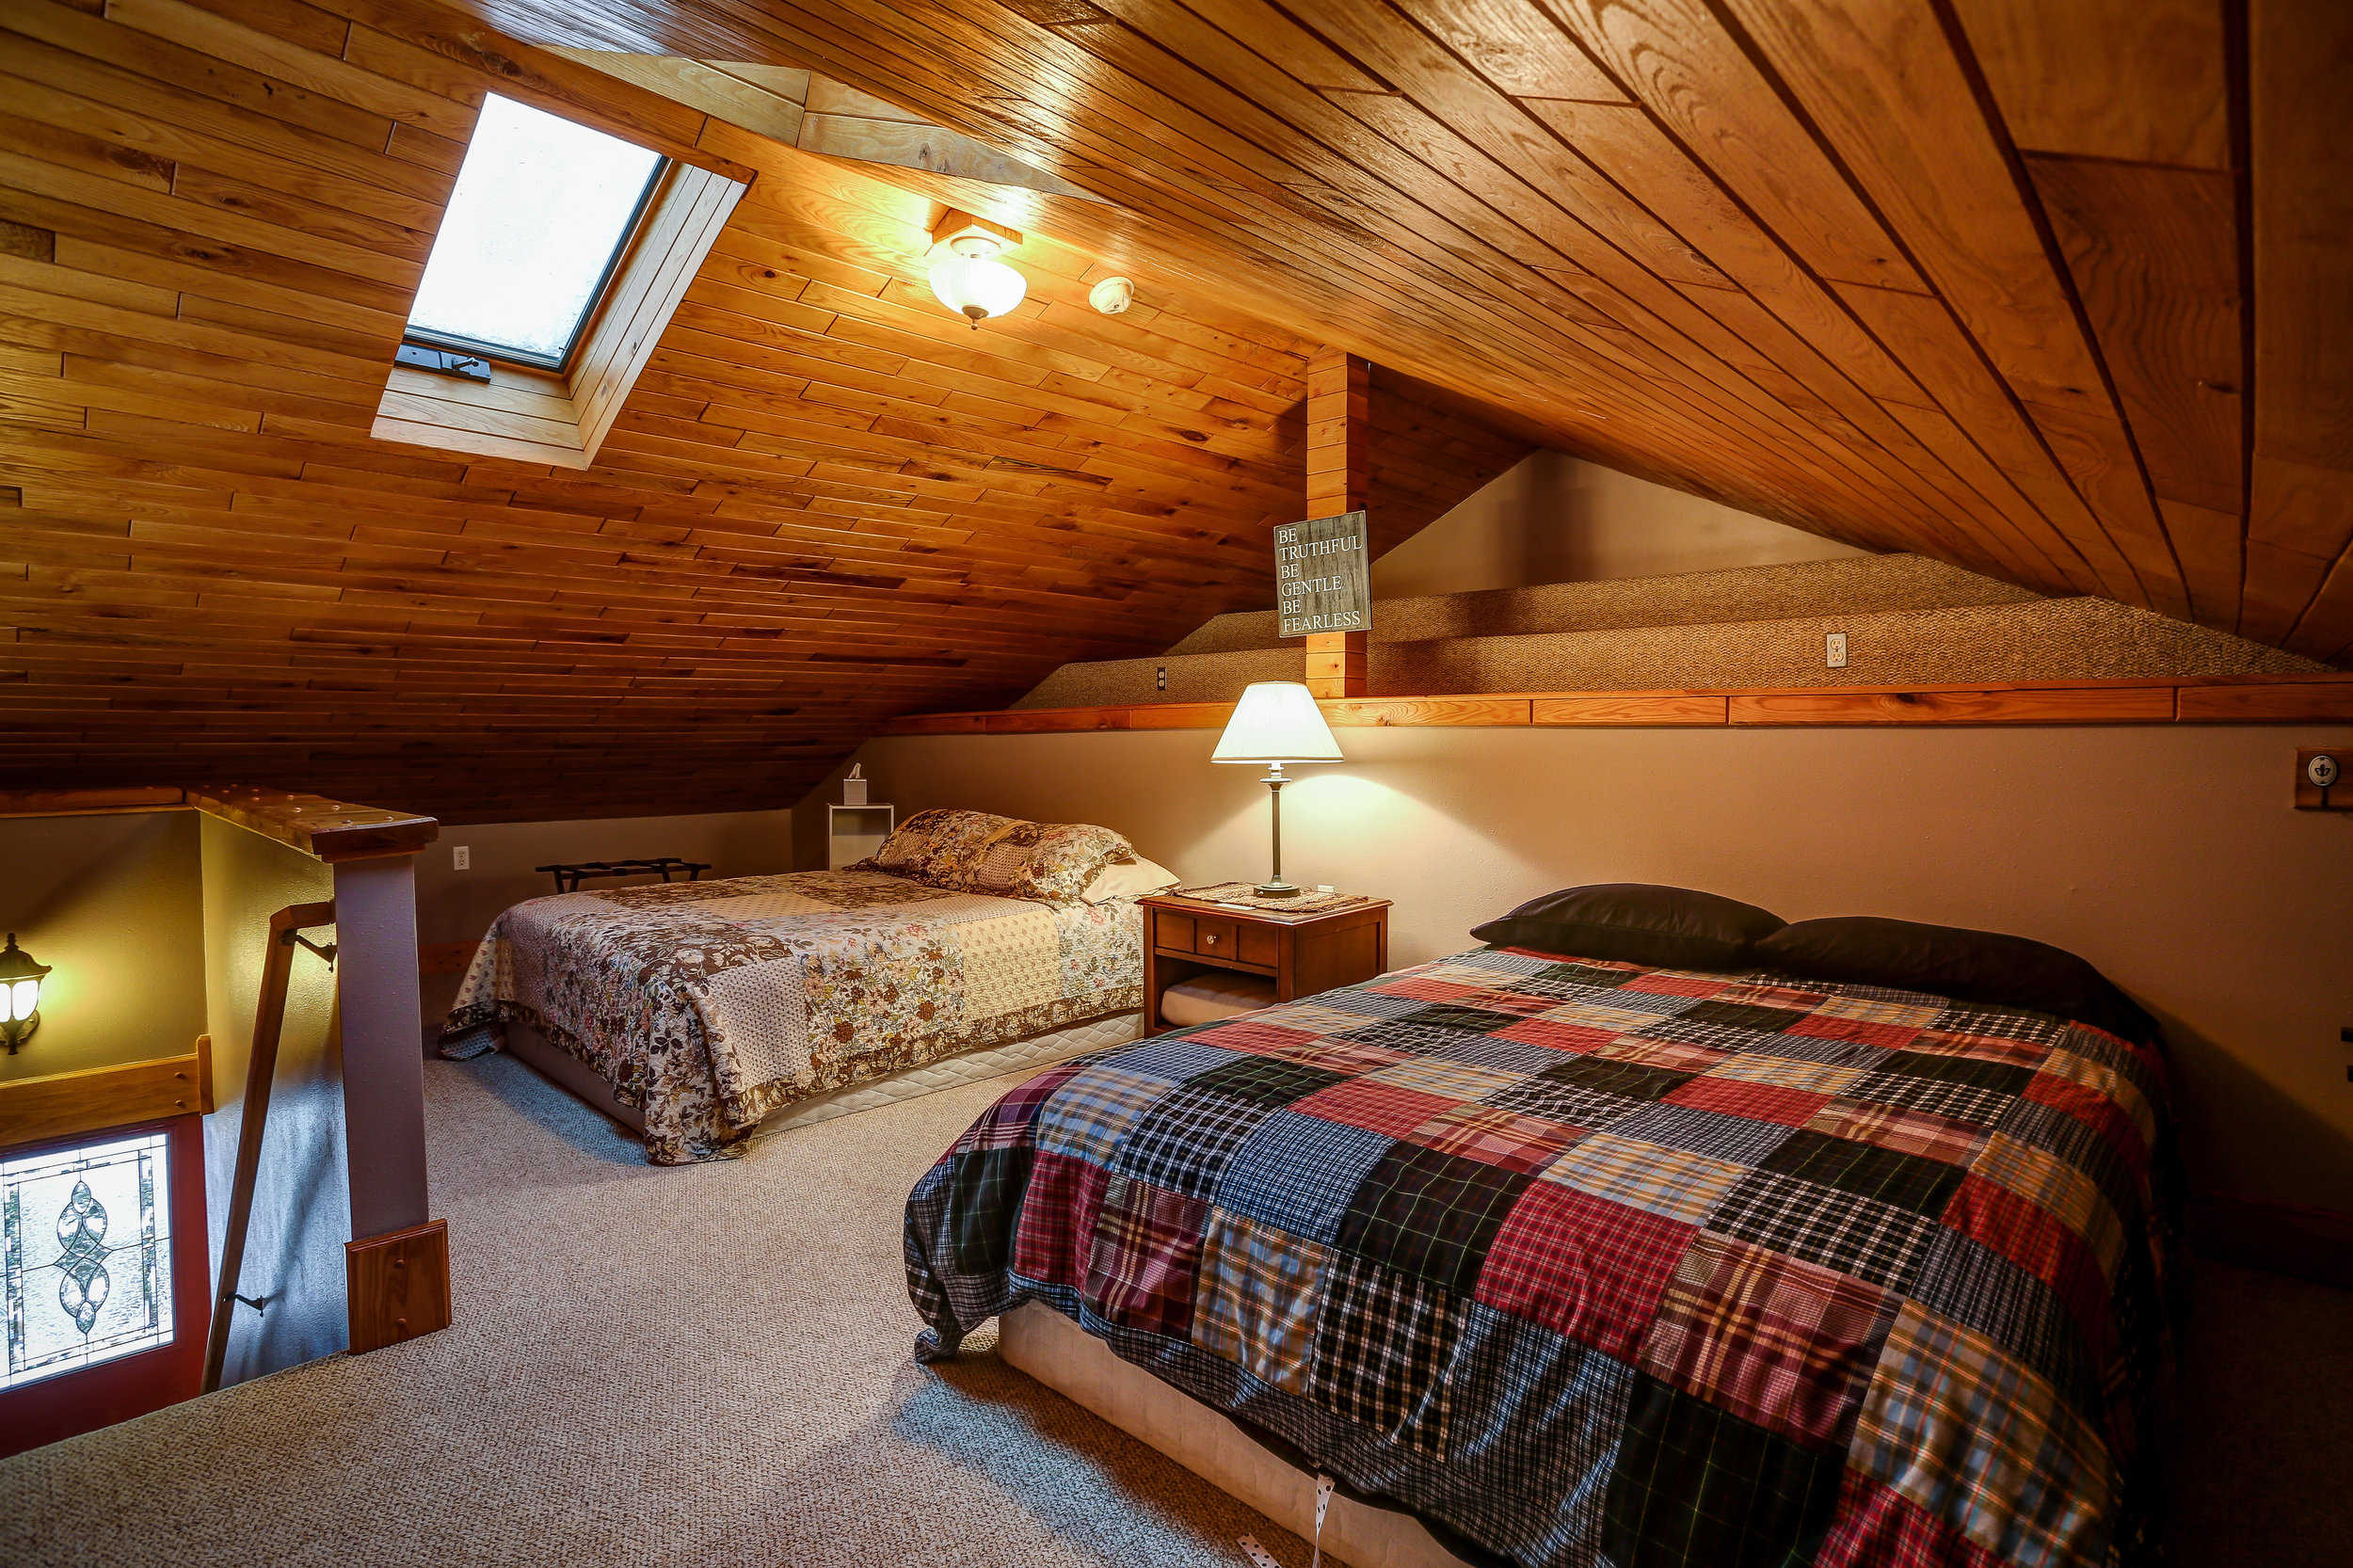 Living Room Loft - Upstairs | Two queen beds and shared bathroom on main level